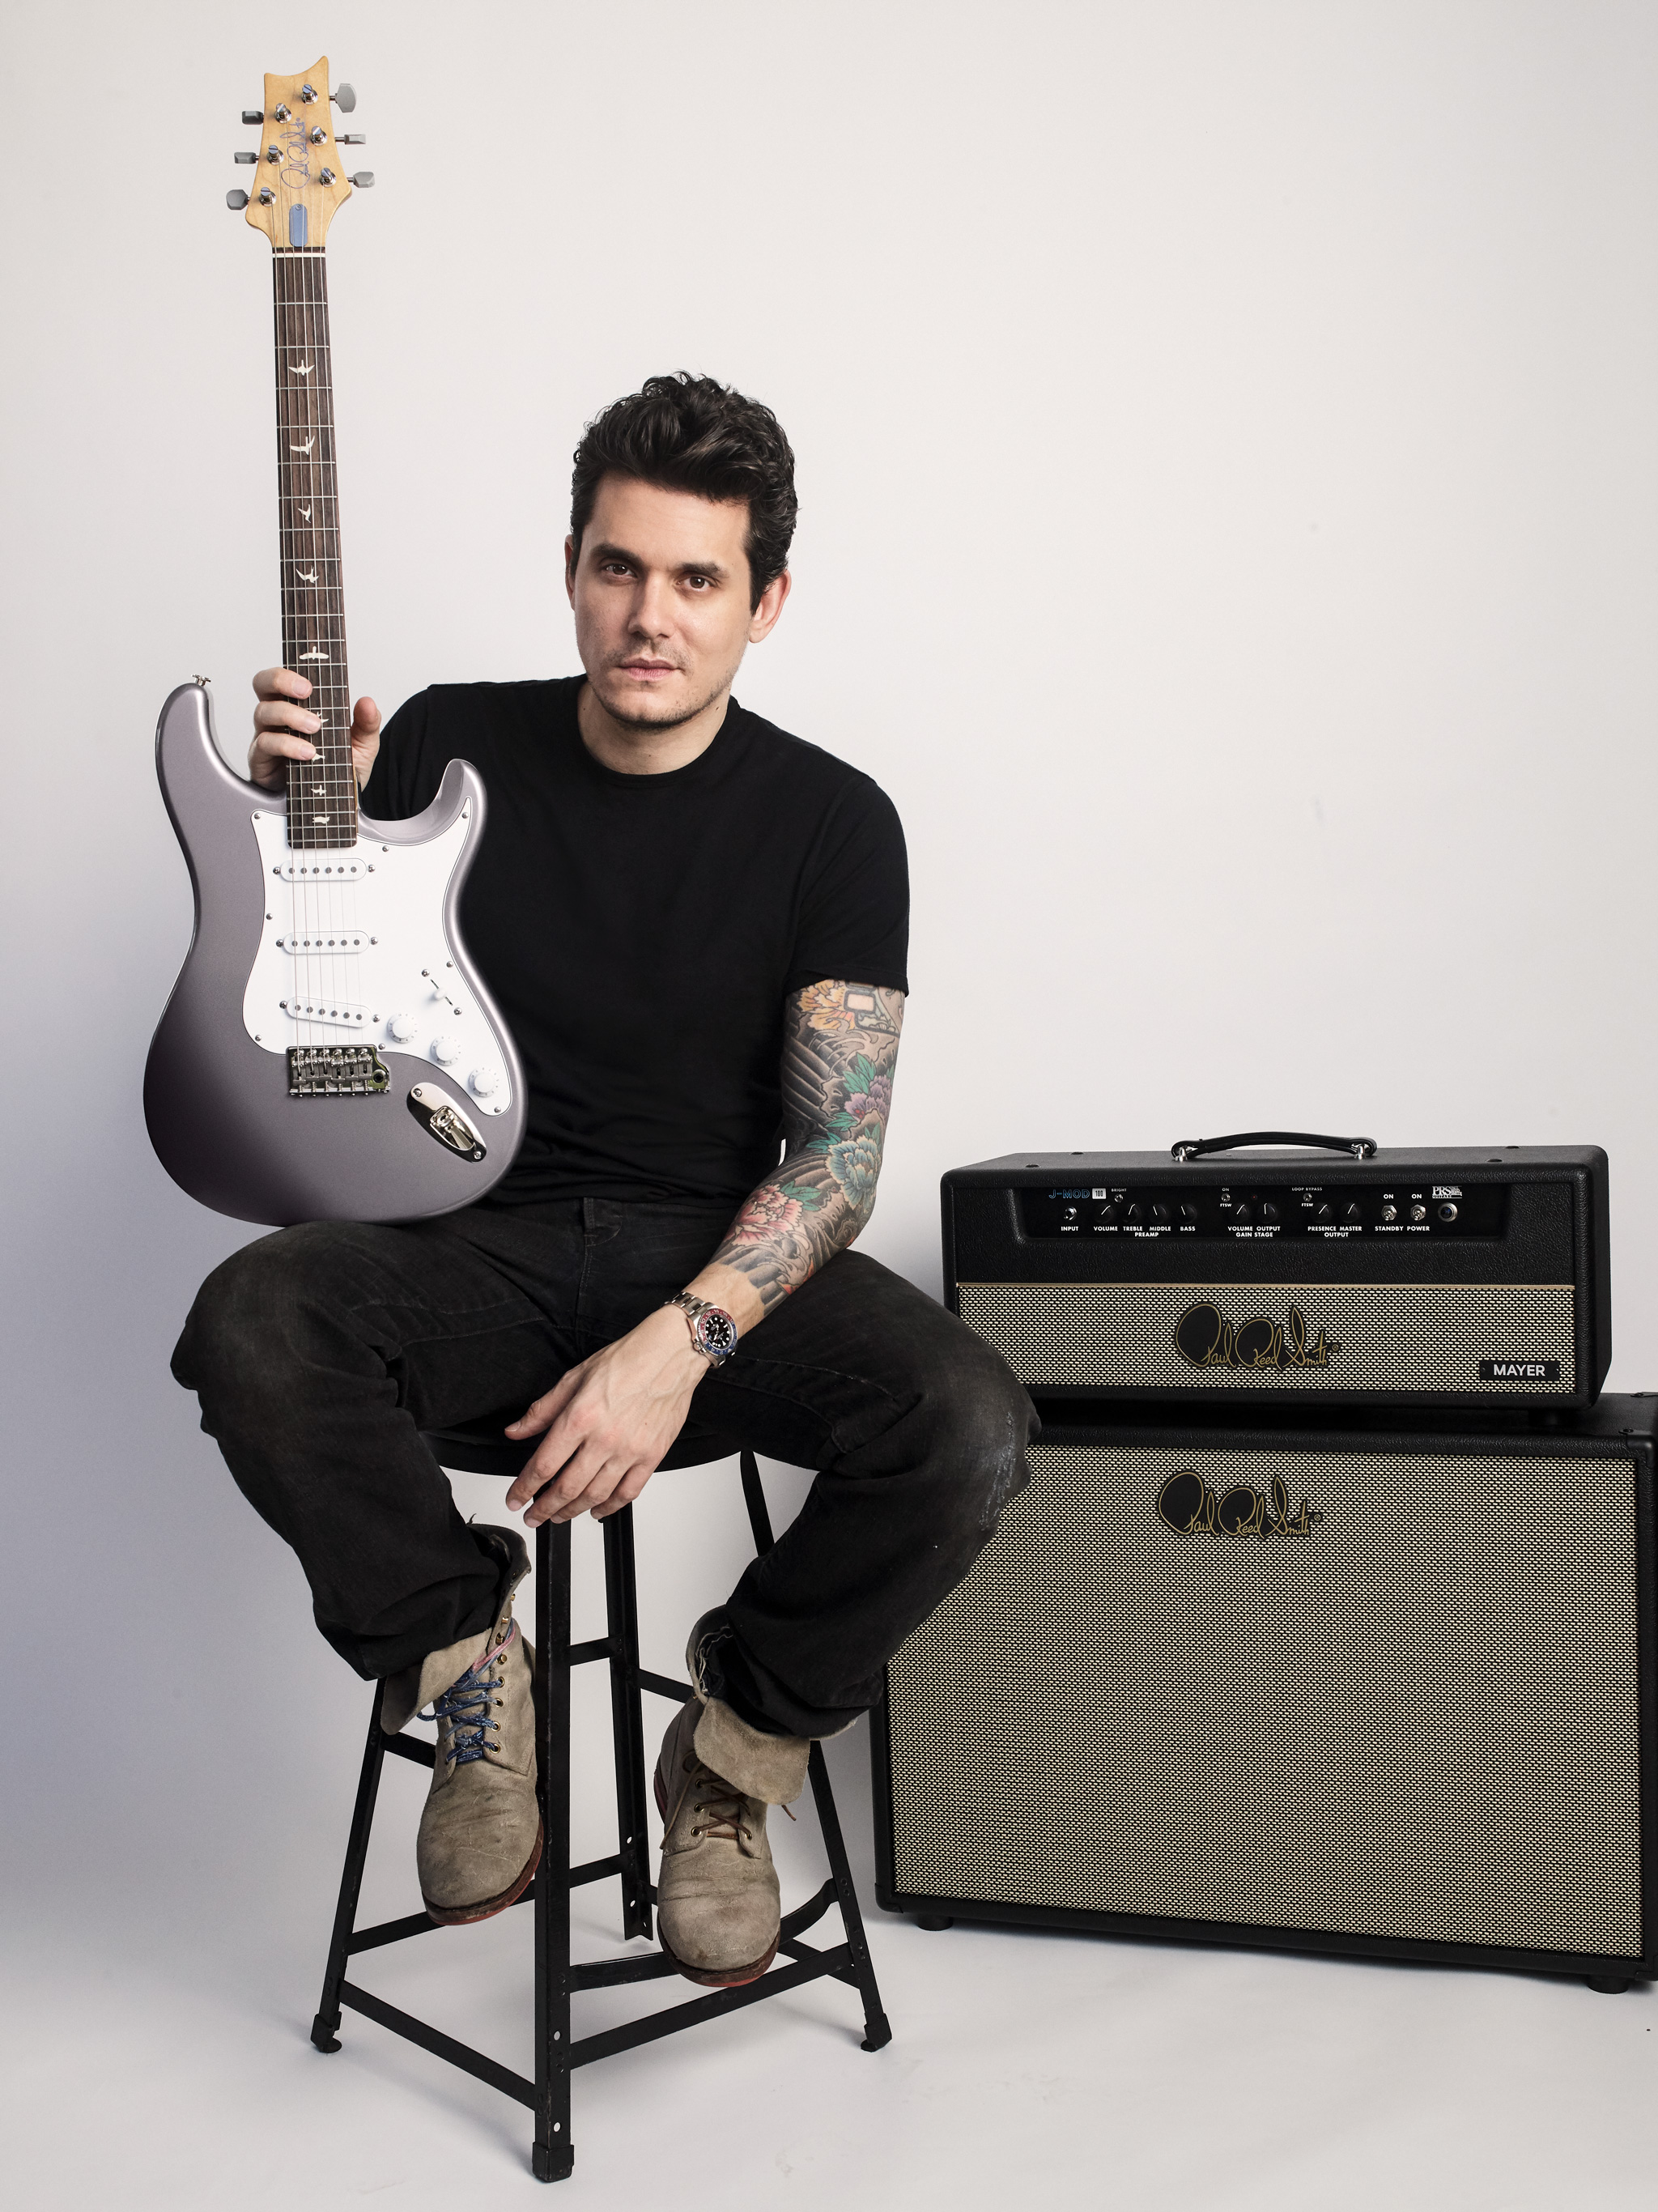 John Mayer and his signature guitar: the silver sky